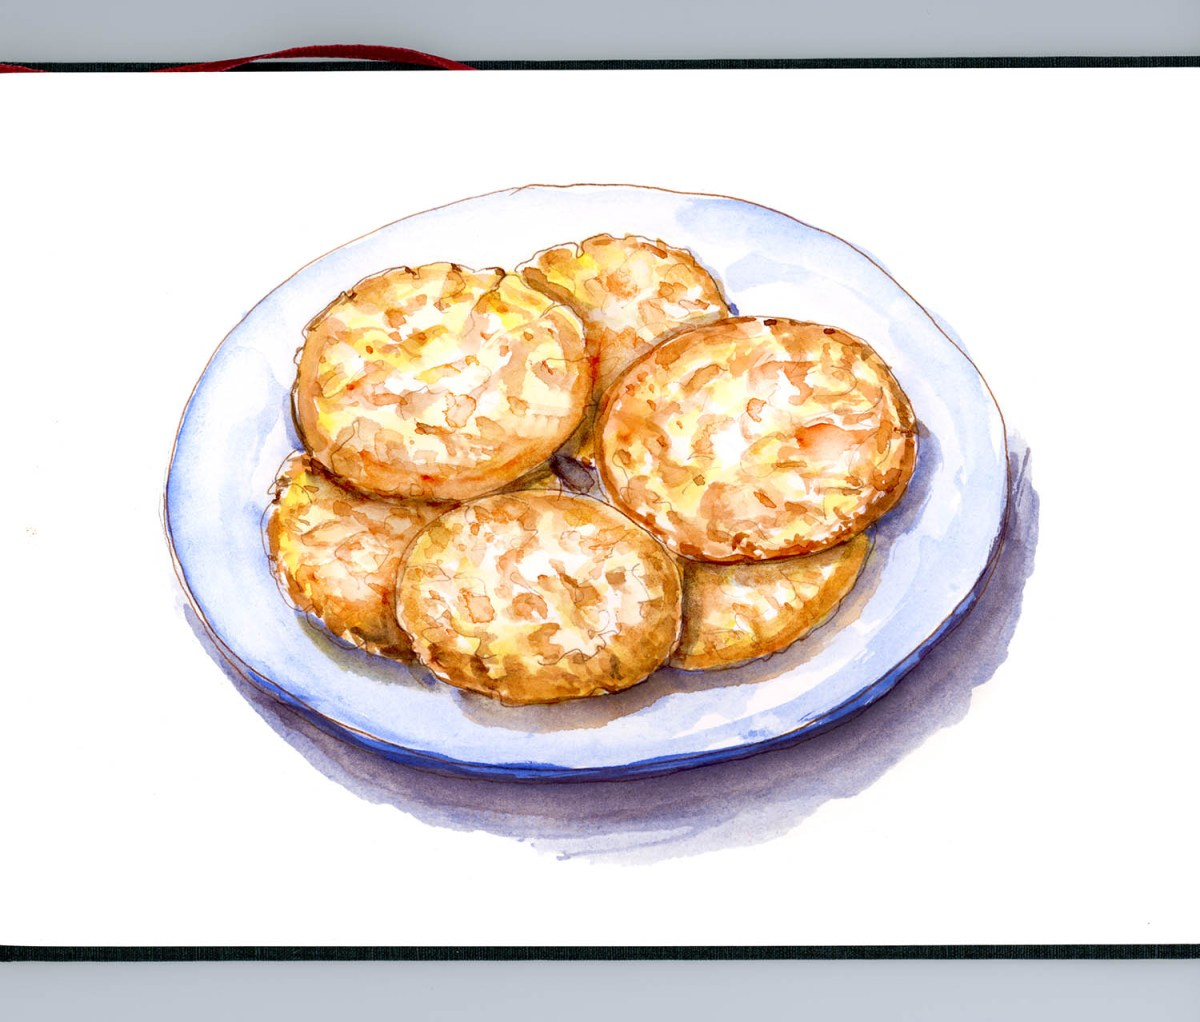 Day 27 - When Mom Made Snickerdoodles Cookies - #doodlewashApril2018 Doodlewash